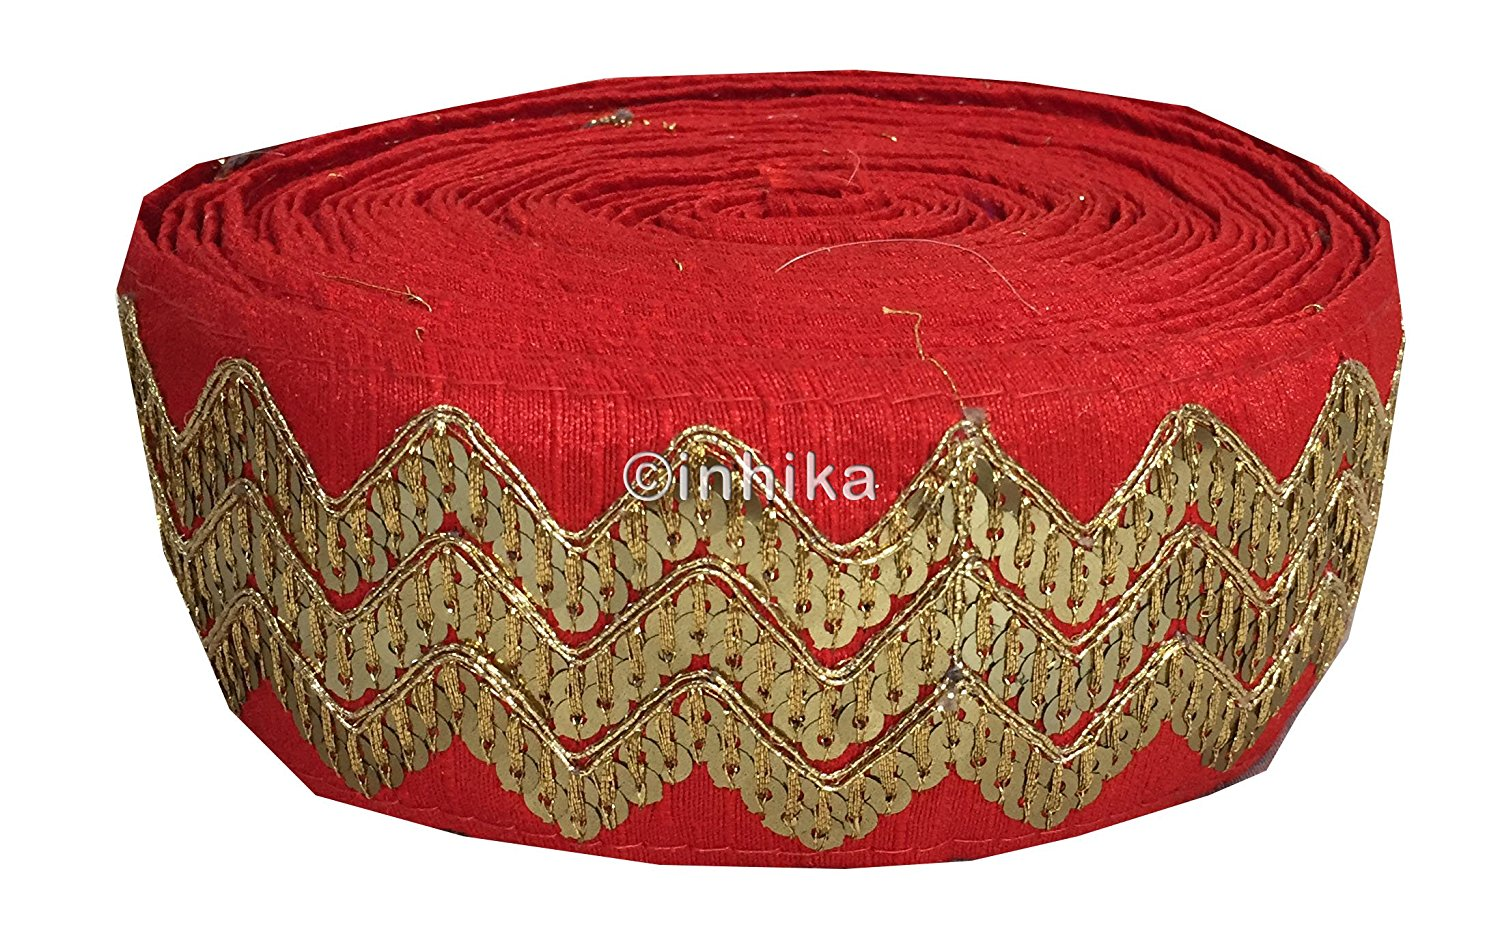 9 Meter Yard Roll Of Lace Dupion Gold Sequins Embroidery 3 Row